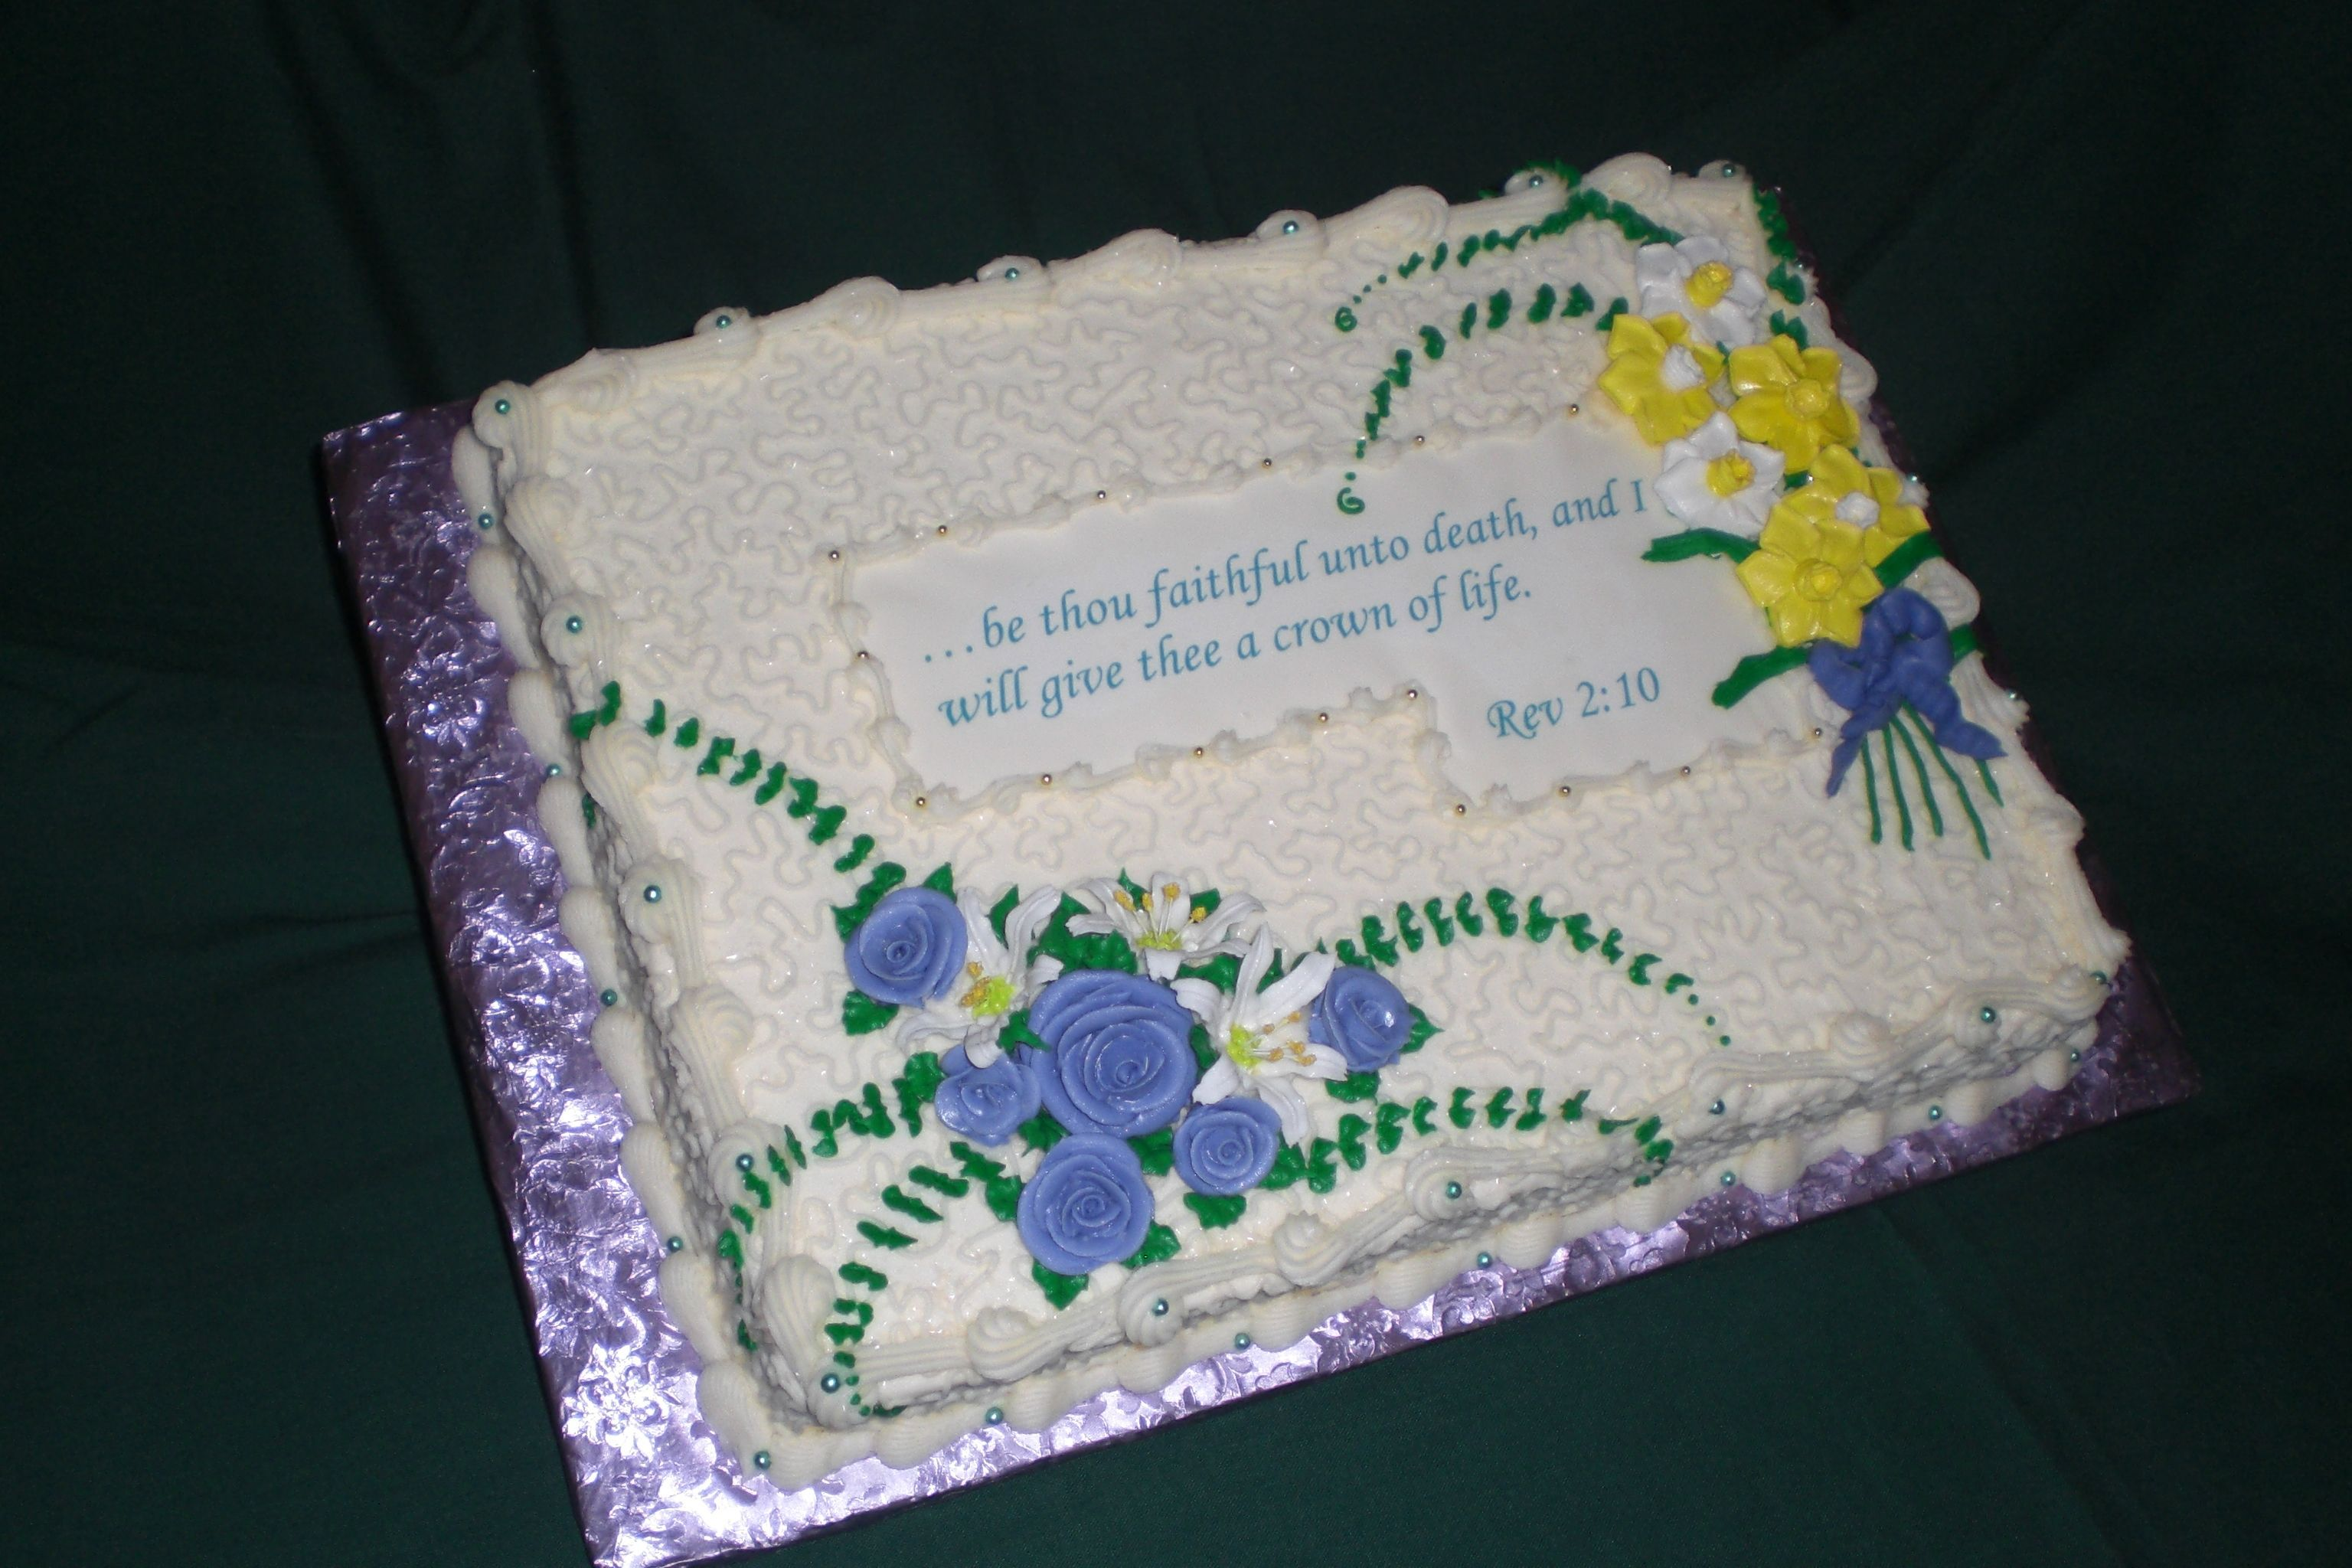 Cake For Funeral Reception Cake For A Funeral Reception